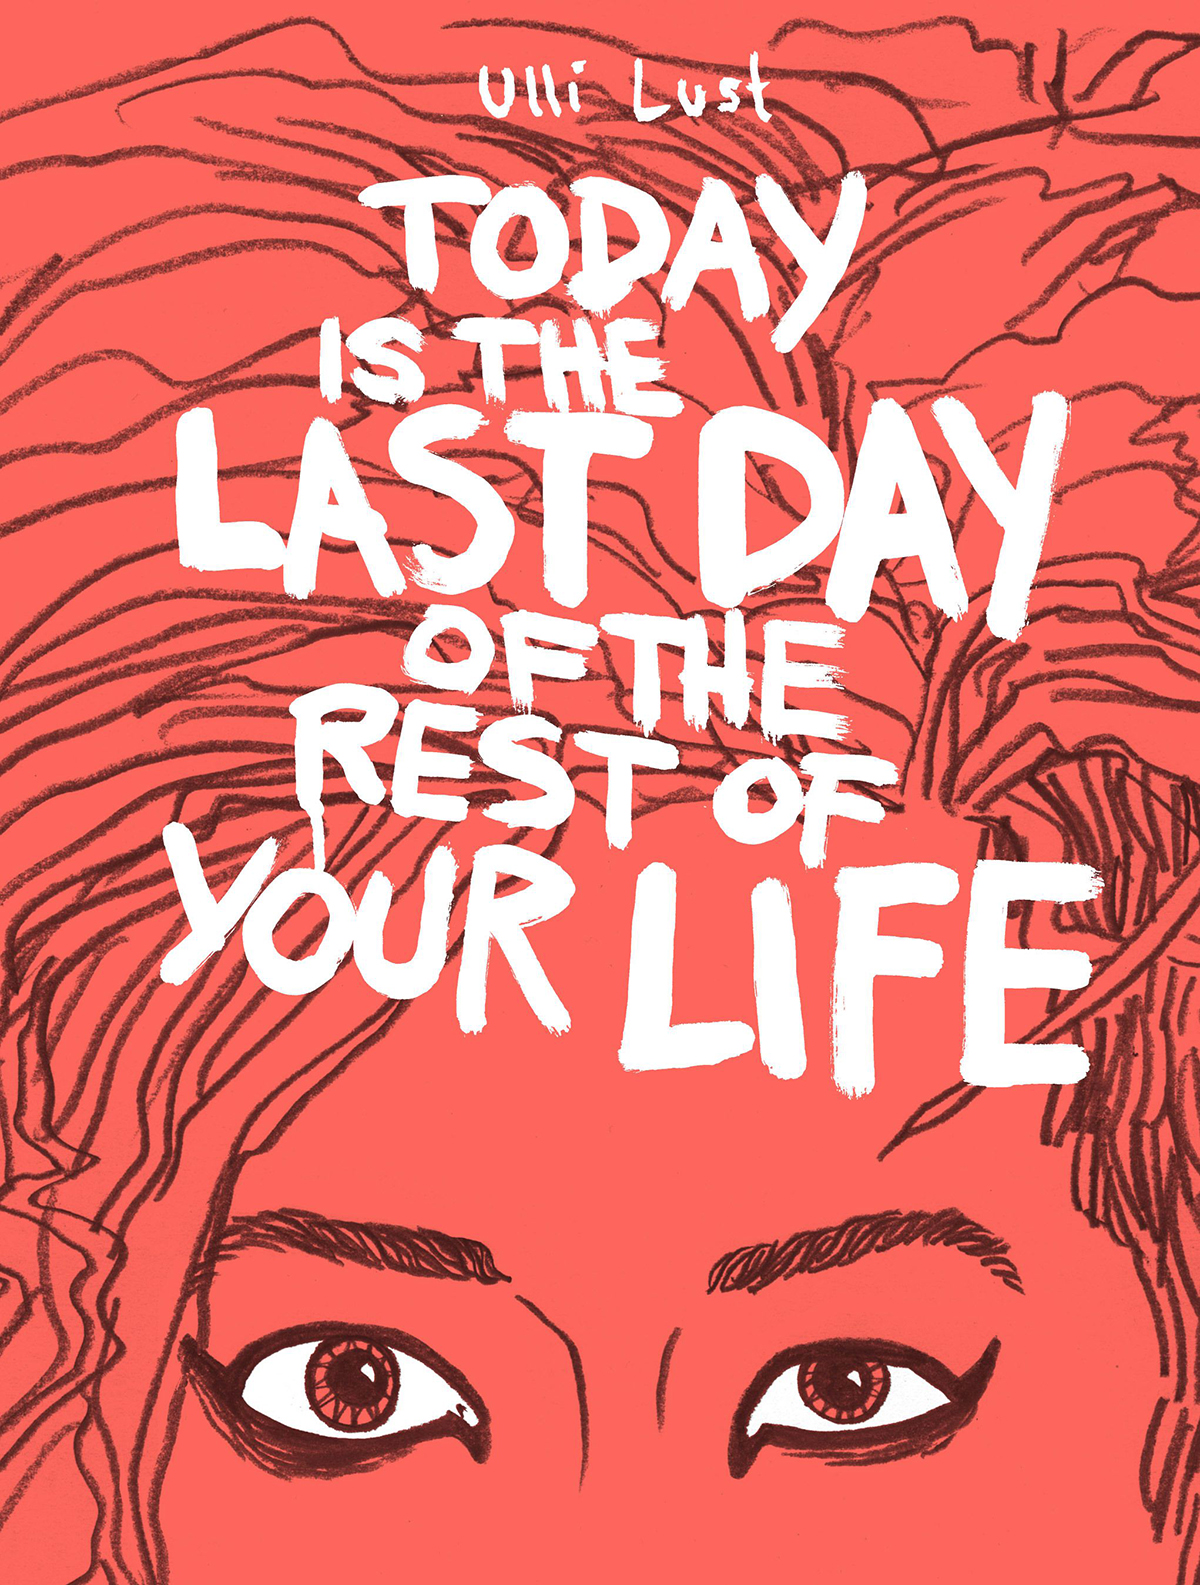 Draw, Write, Love: Ulli Lust's Today Is the Last Day of the Rest of